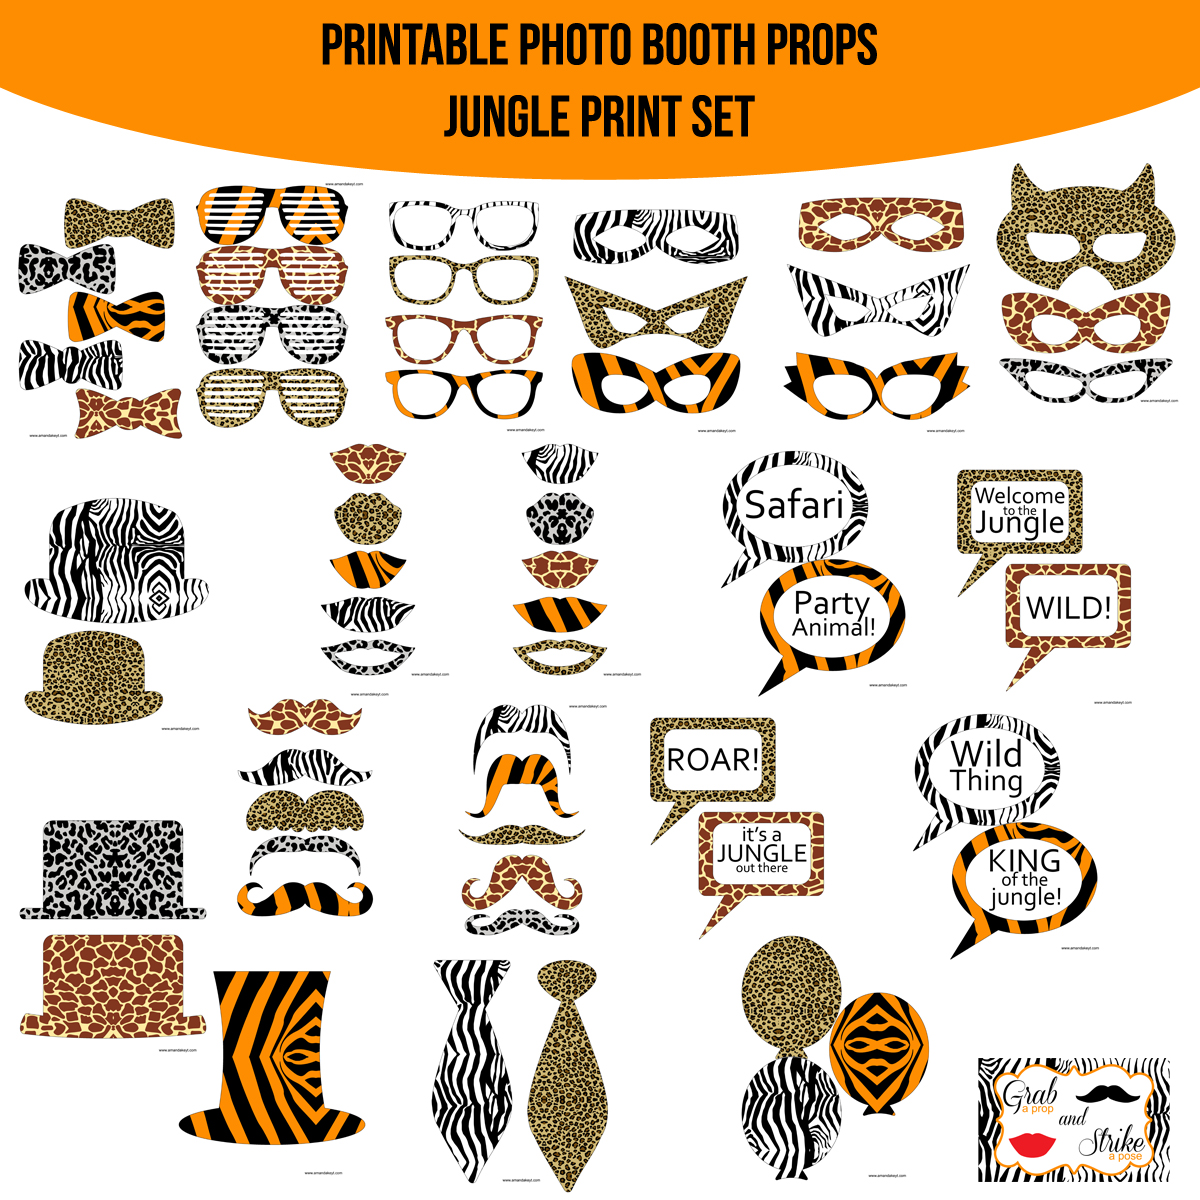 See the Set - To View The Whole Jungle Animal Print Printable Photo Booth Prop Set Click Here